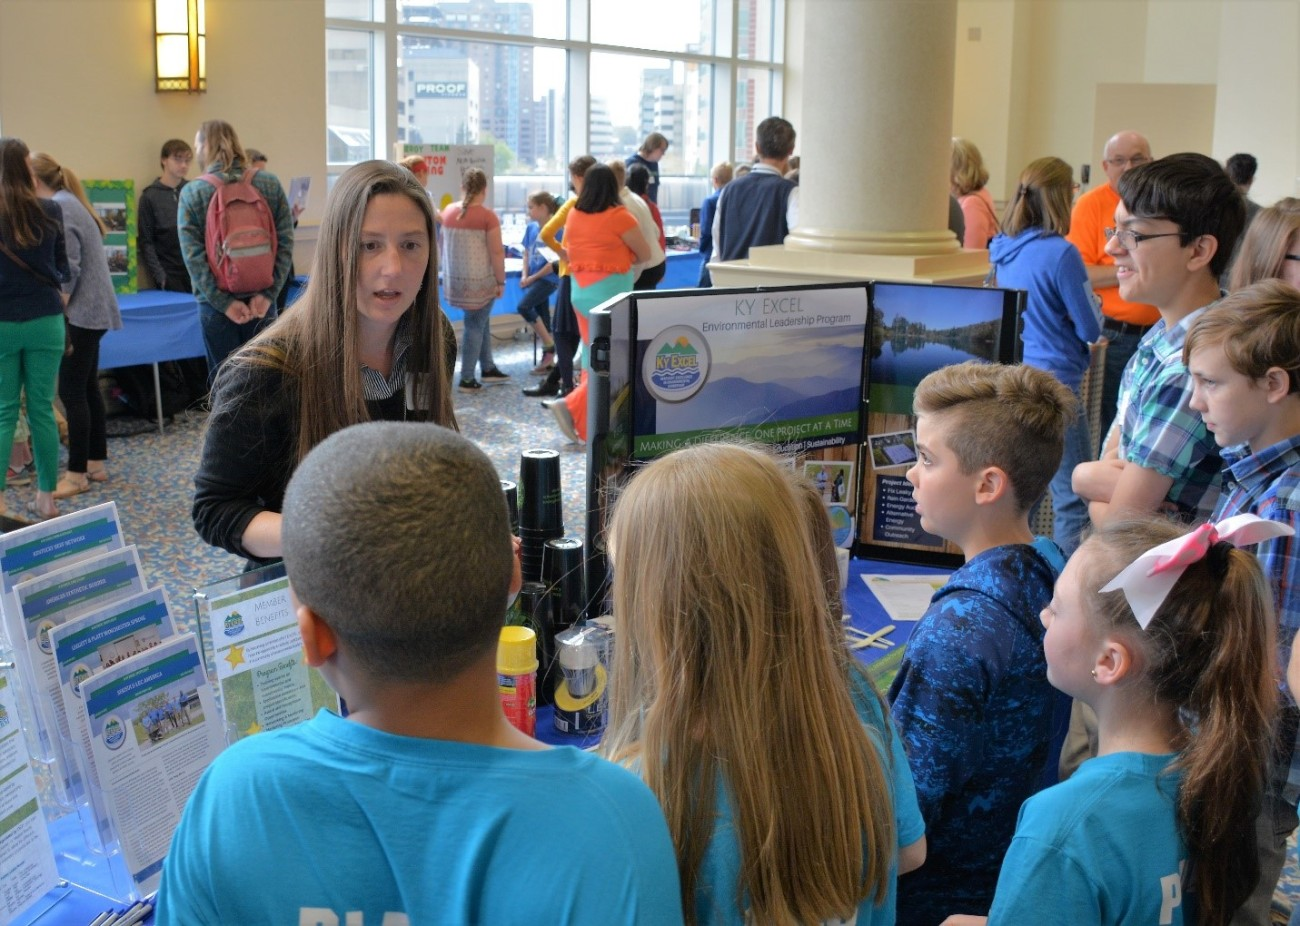 Robyn Whitted discusses the KY EXCEL program with students from the Shepherdsville Elementary School.